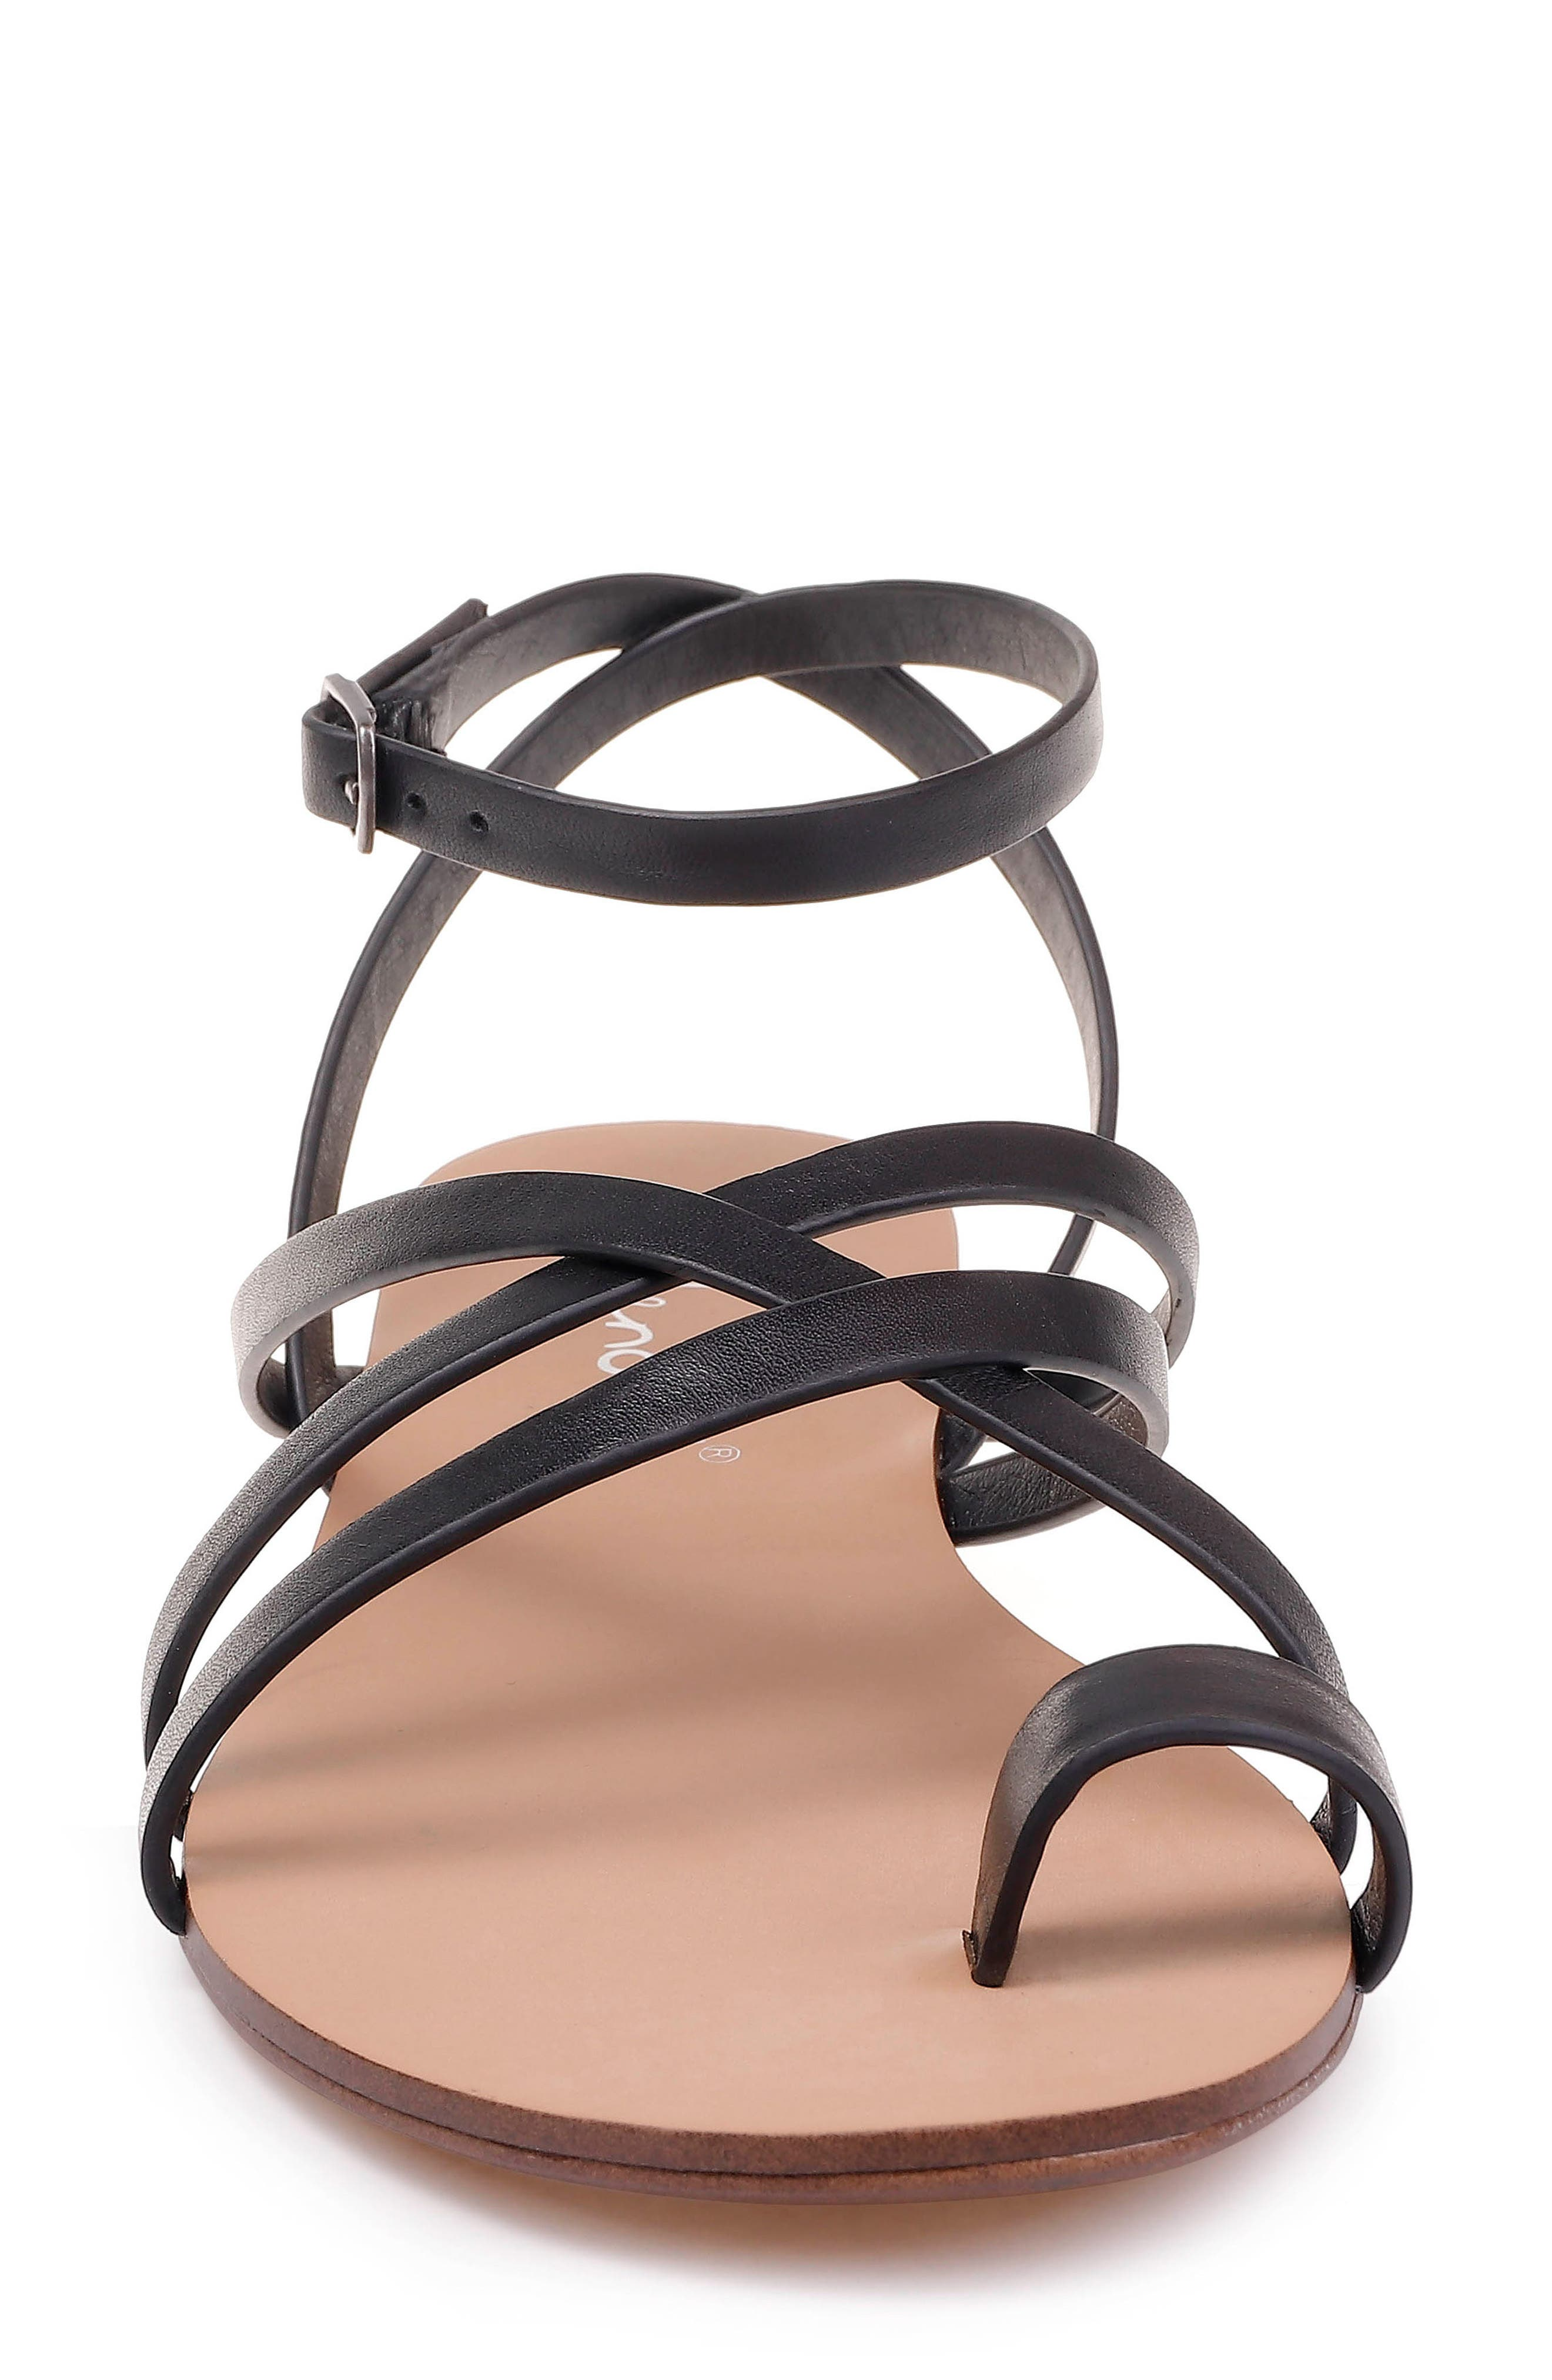 Sully Strappy Toe Loop Sandal,                             Alternate thumbnail 4, color,                             BLACK LEATHER